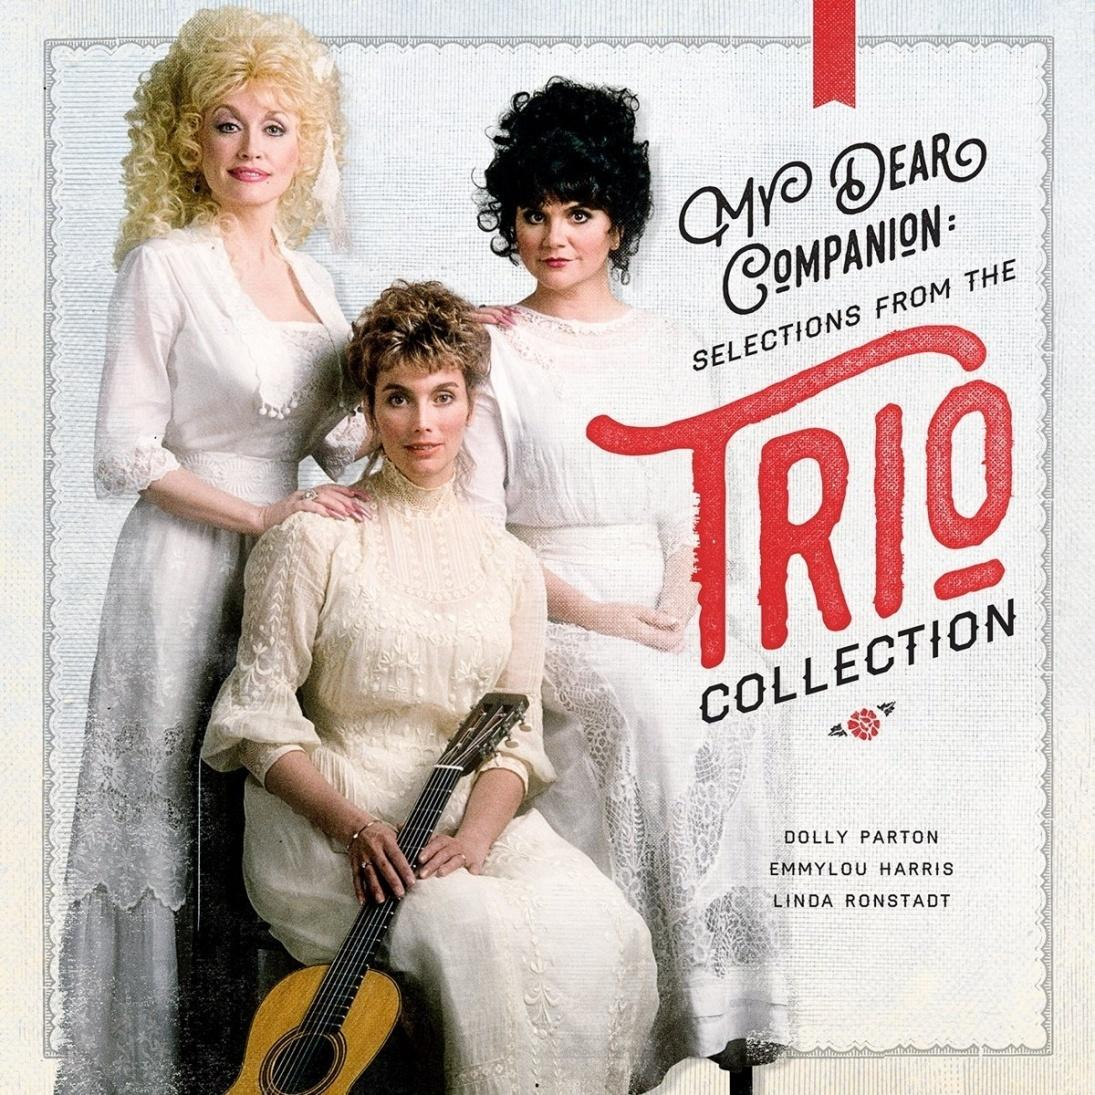 My Dear Companion: Selections From TheTrioCollection